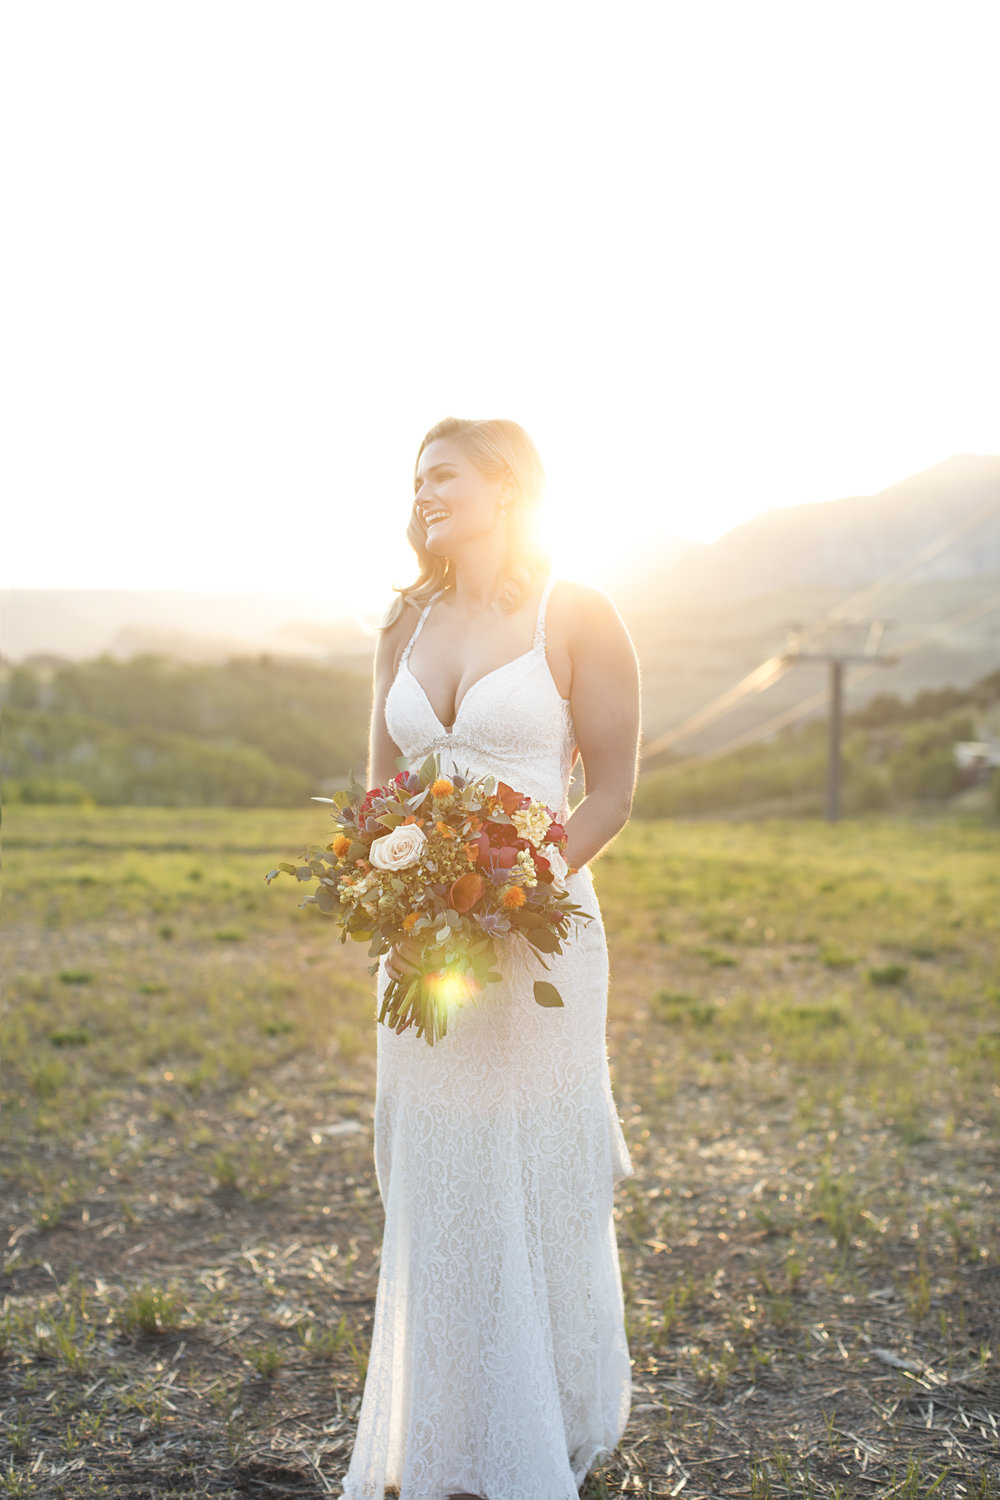 Bride laugh sunset.jpg